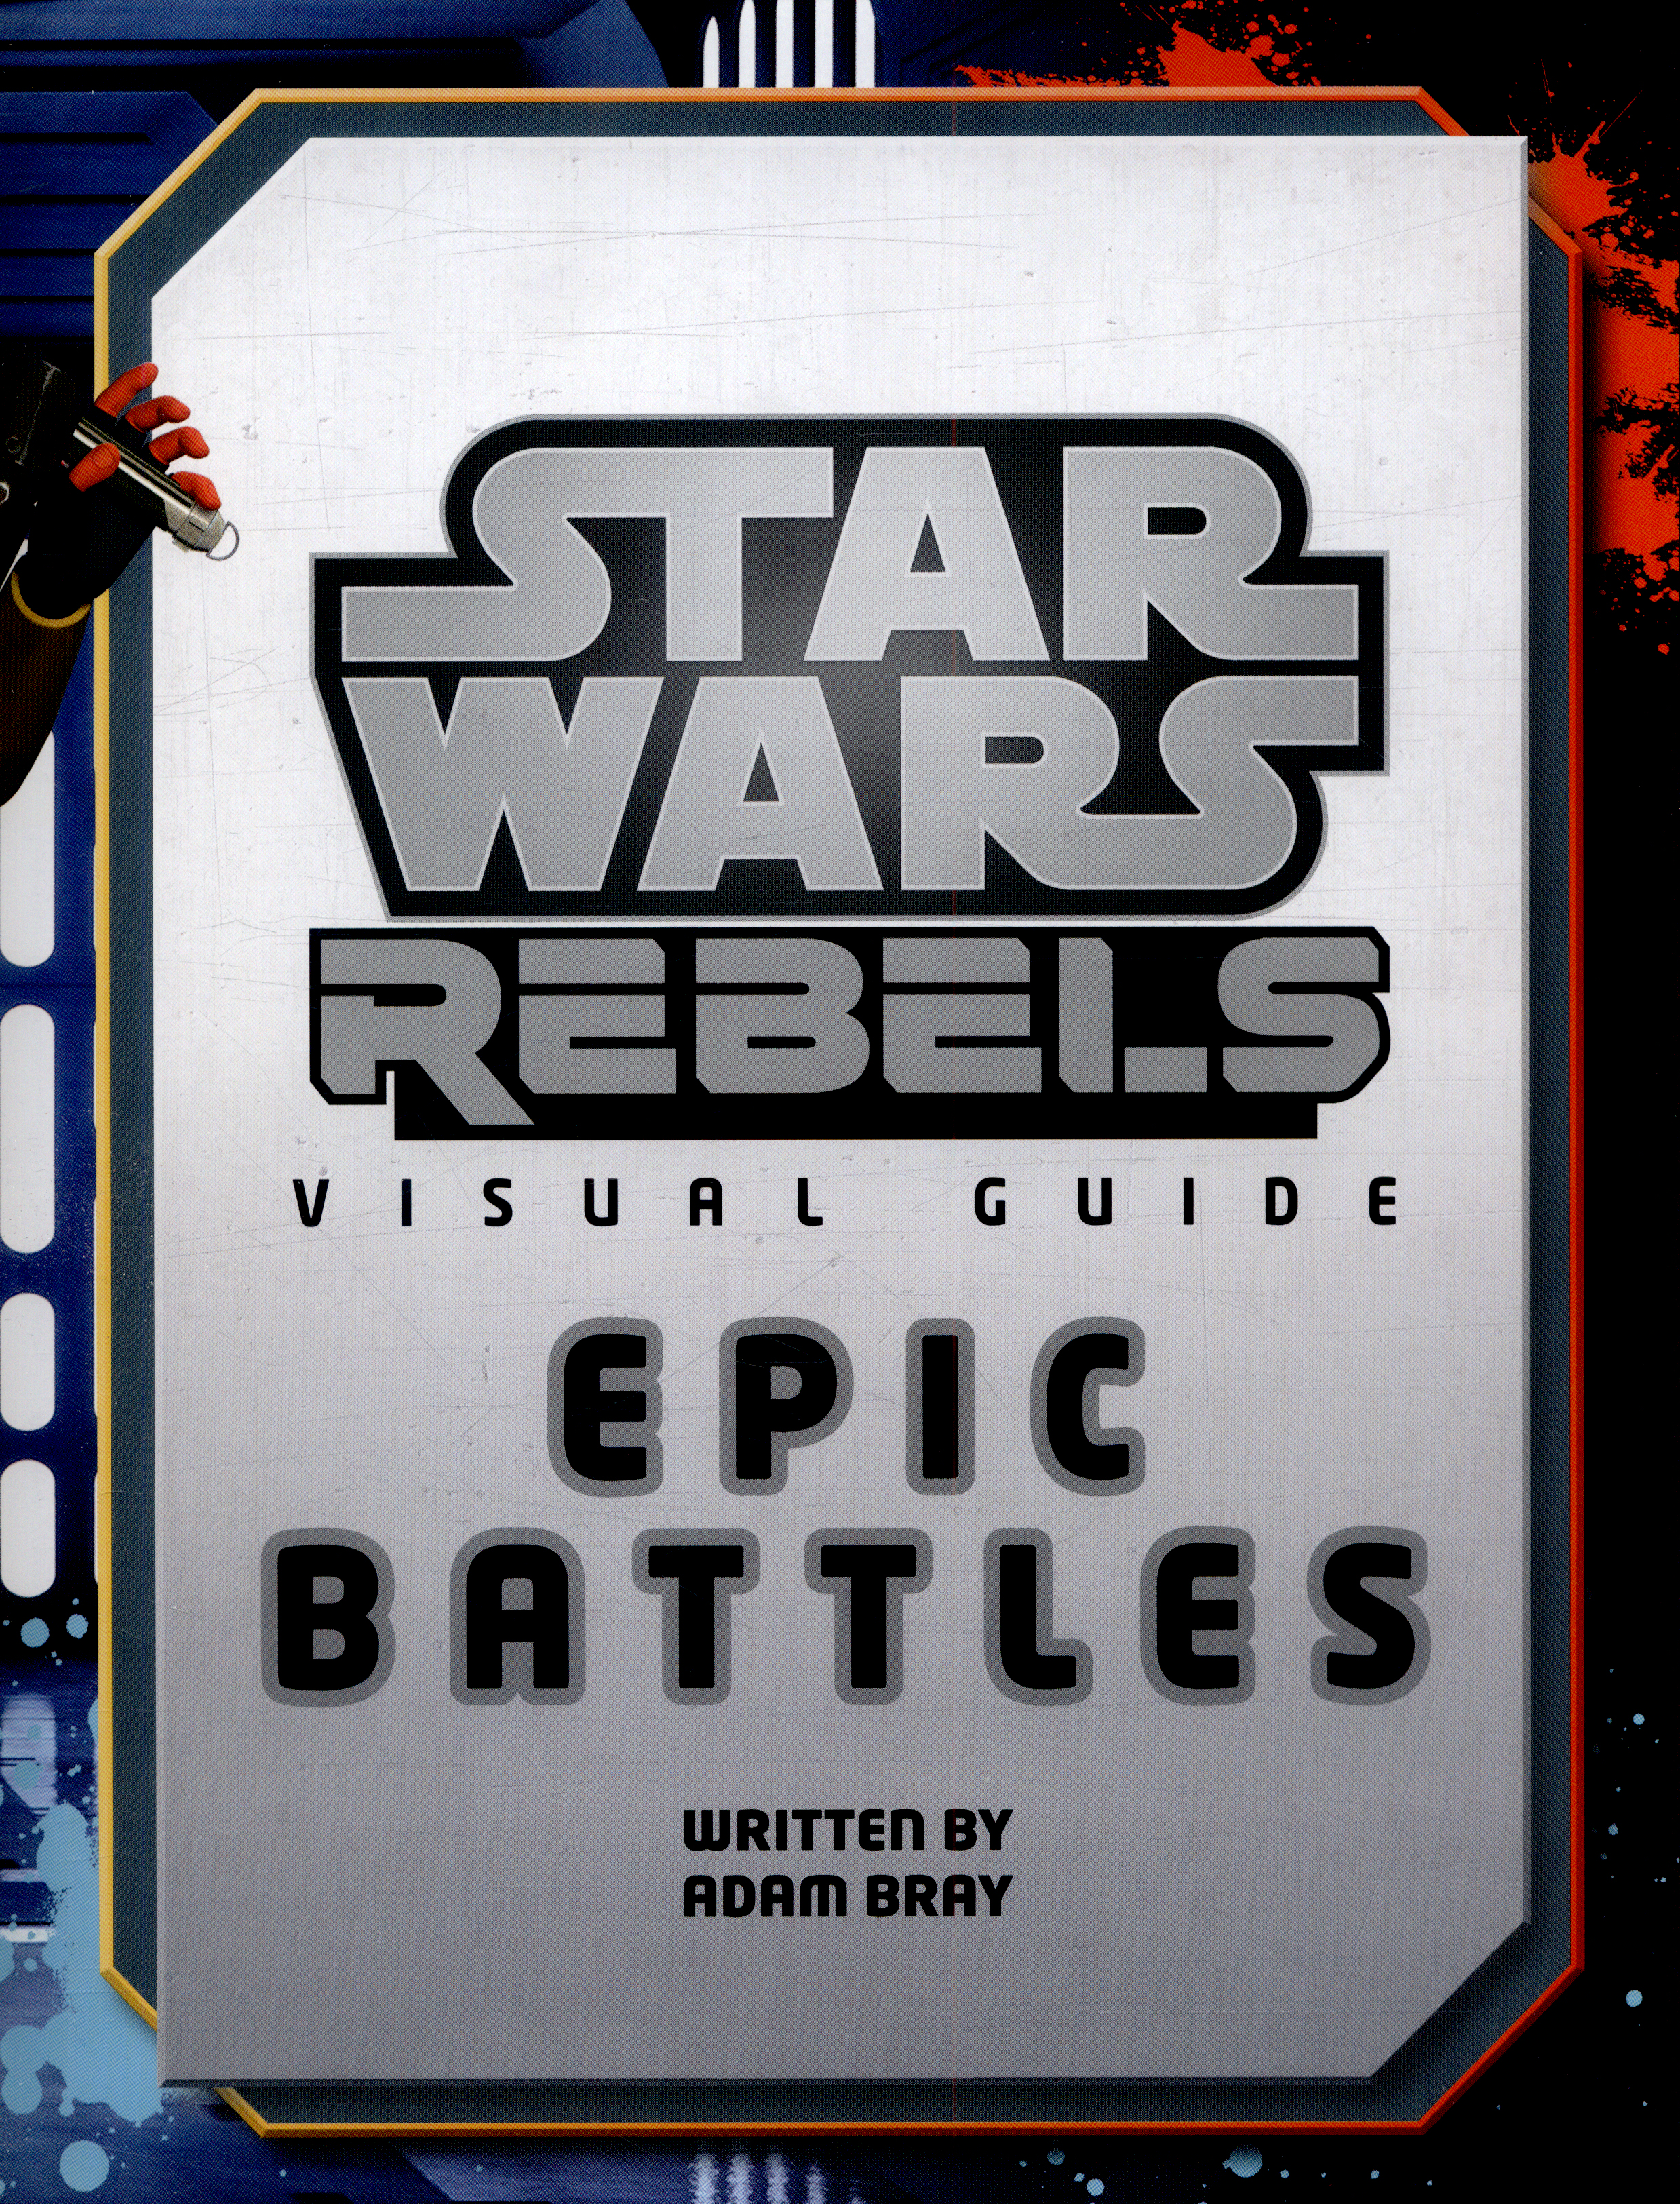 Epic battles : visual guide by DK (9780241198247) | BrownsBfS